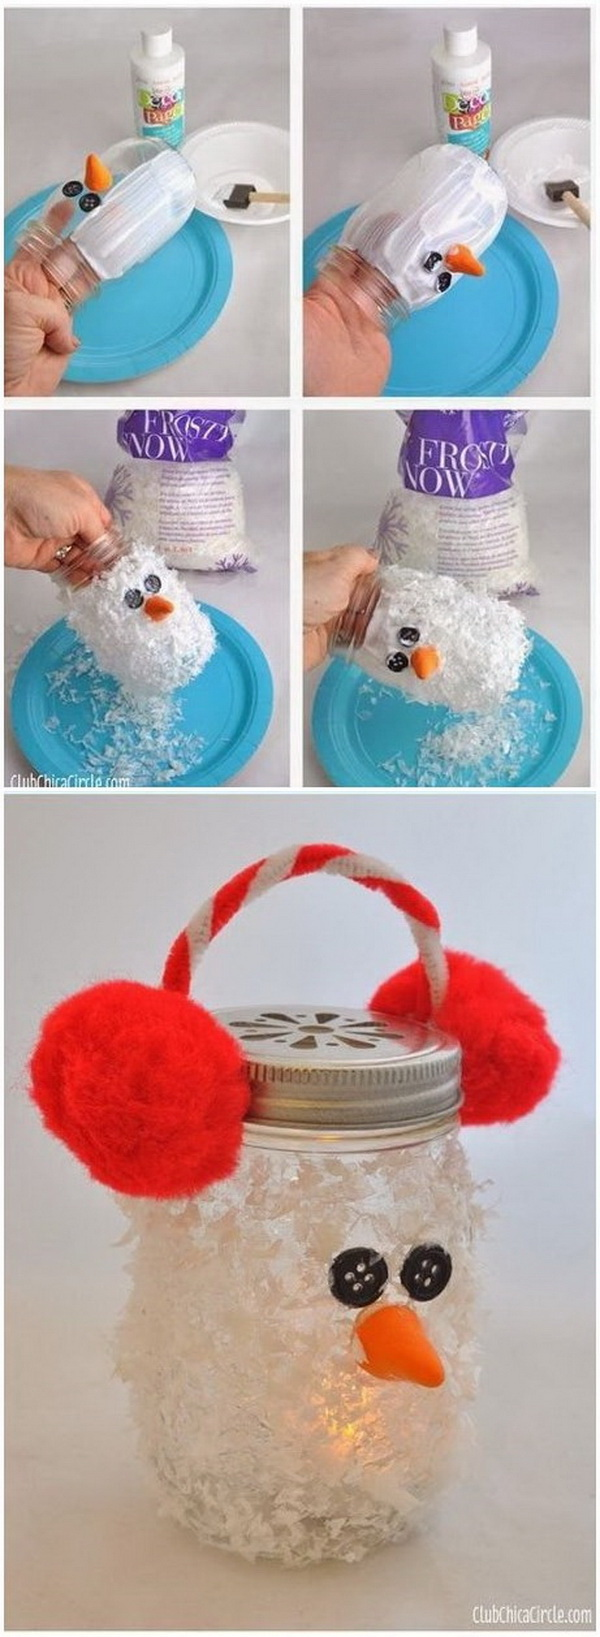 Snowman Mason Jar Luminary. Super cute winter DIY craft idea for kids. Makes fun gifts for Christmas too.